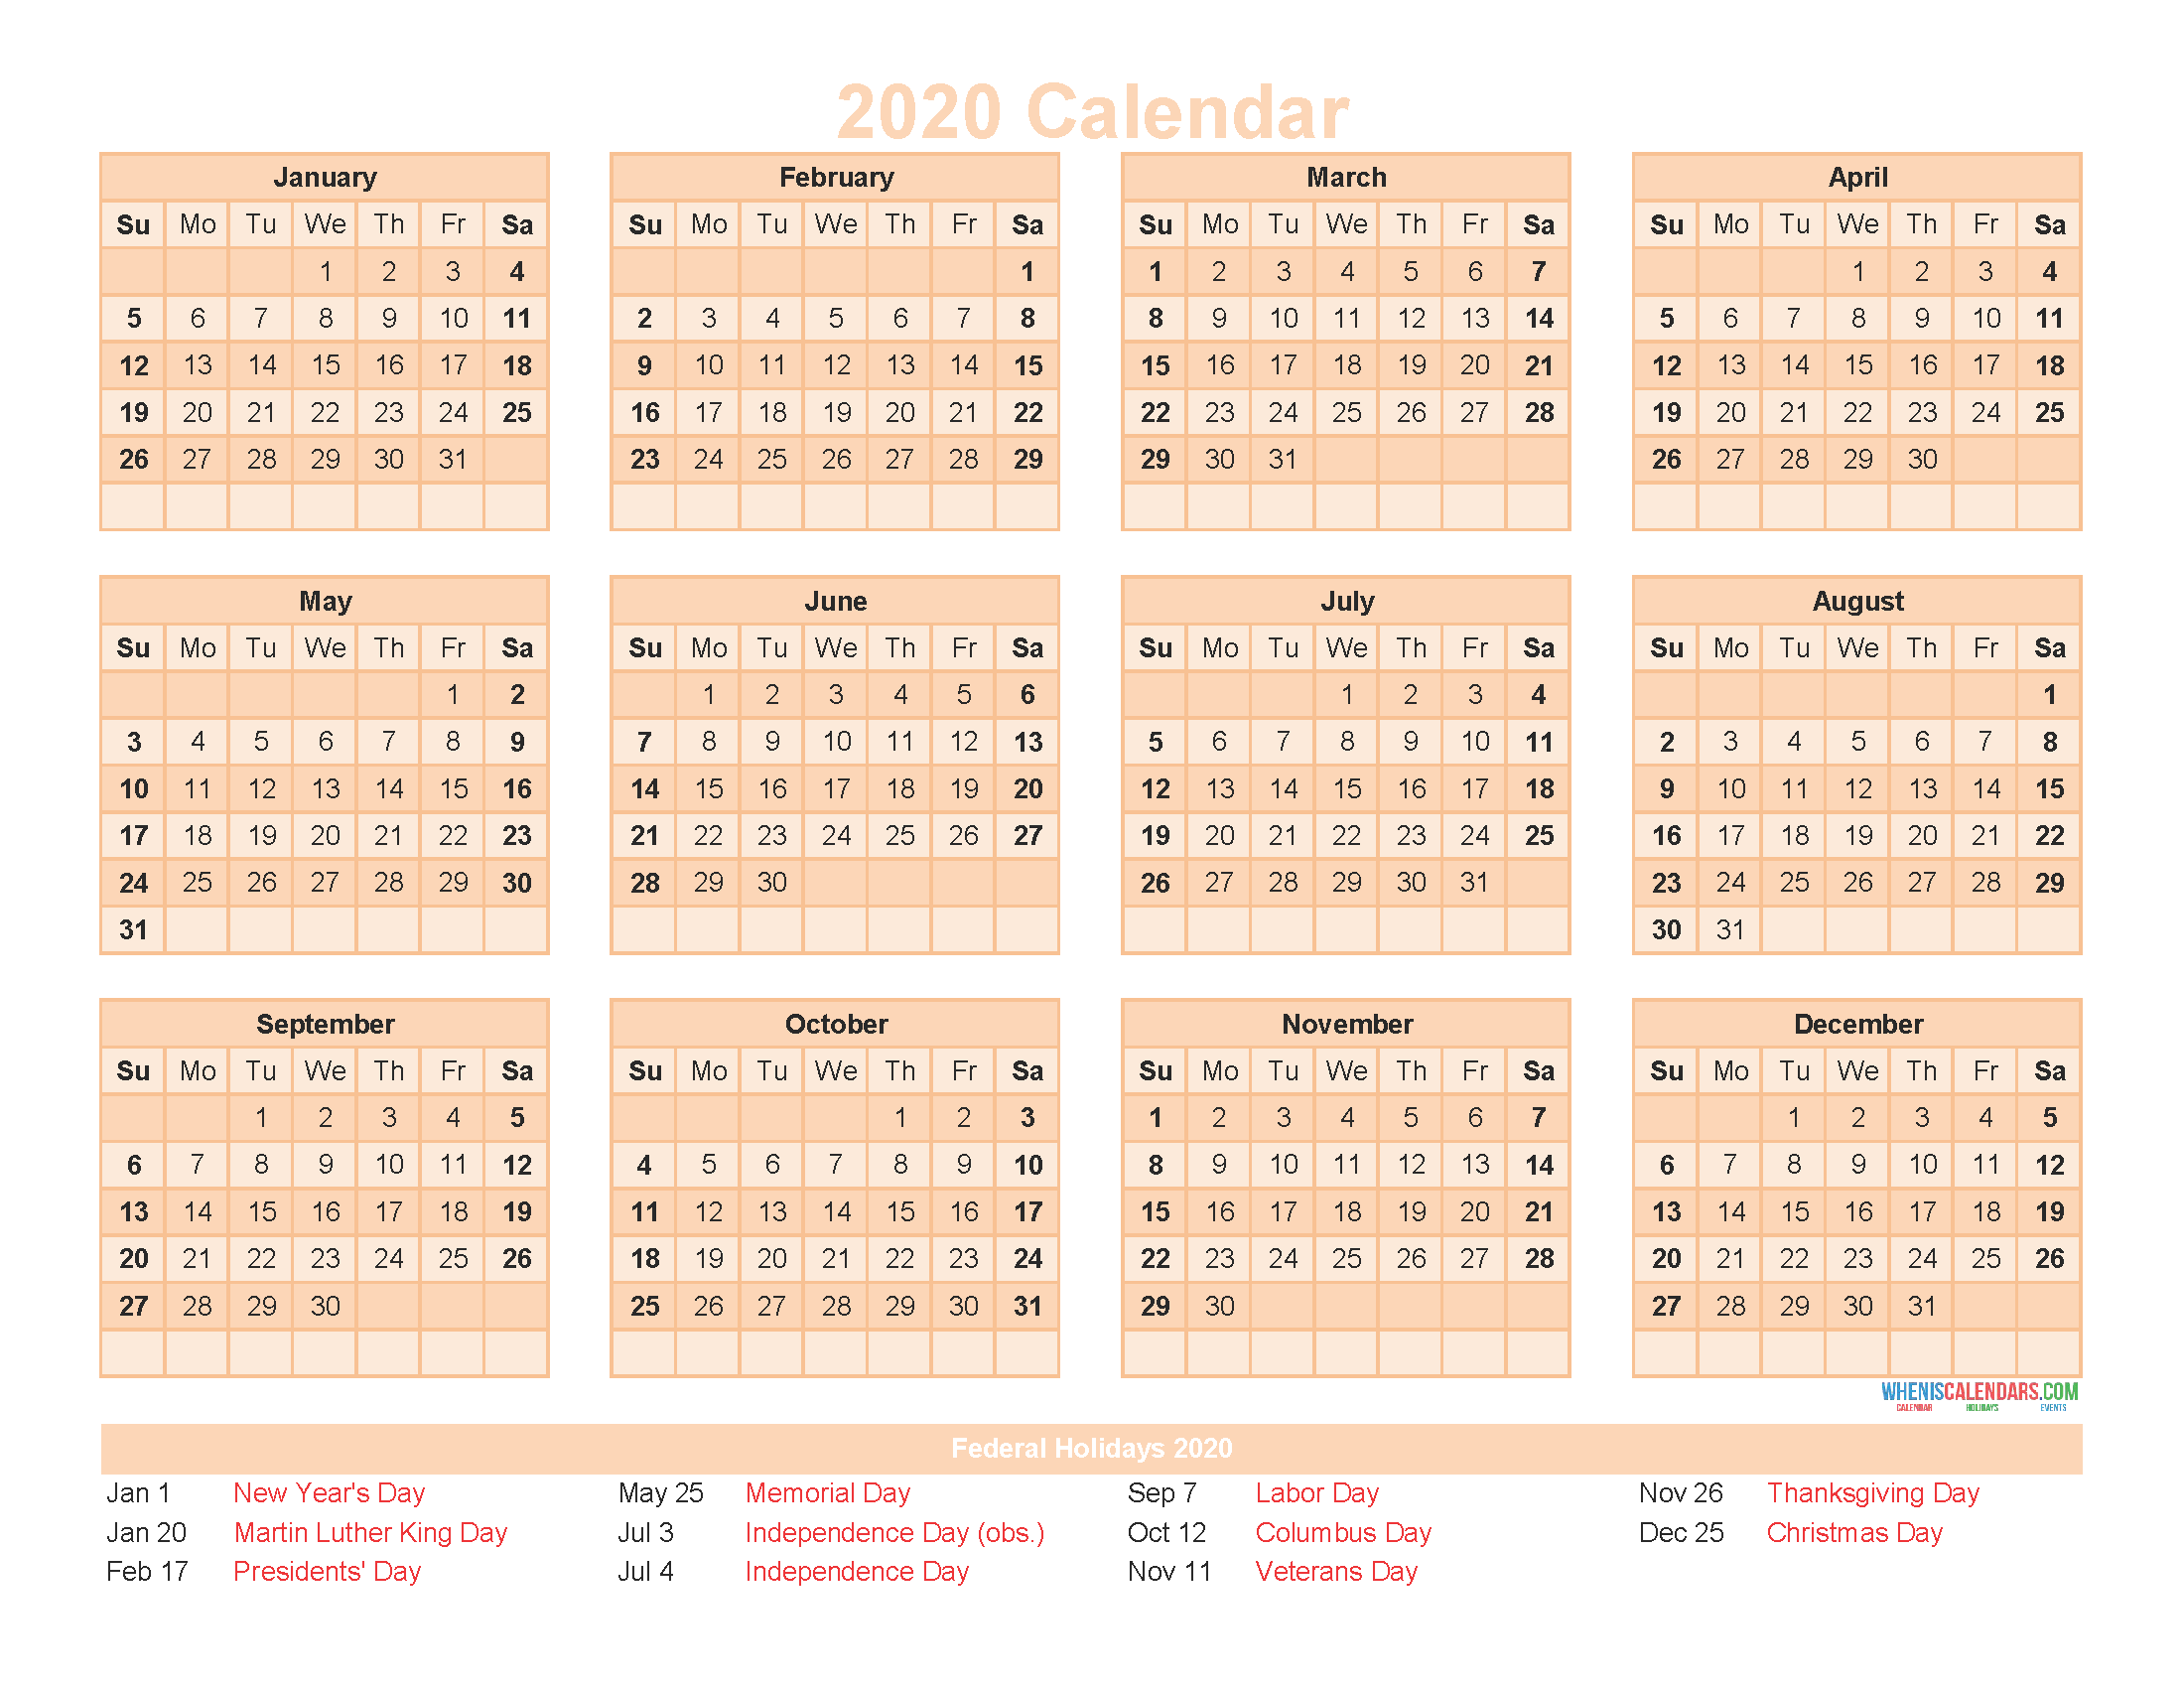 12 Month Calendar on One Page 2020 Printable PDF, Excel, Image